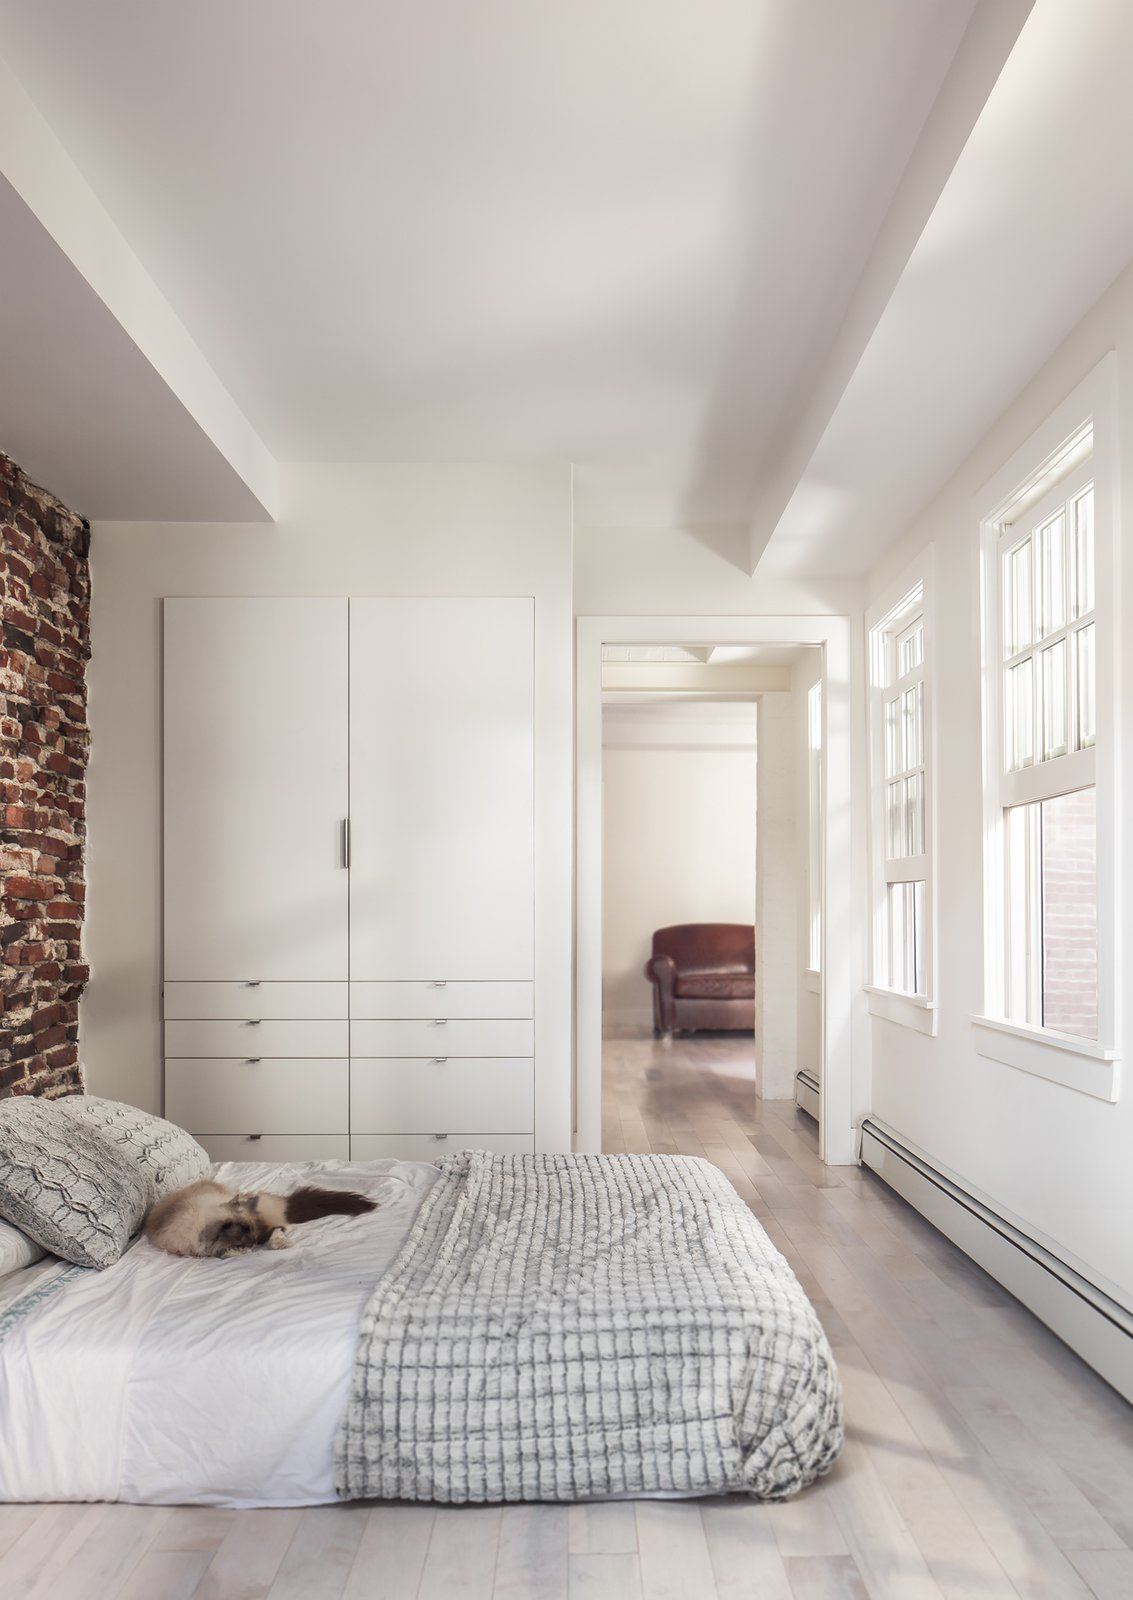 The renovation revealed a 30-foot-deep well beneath the bedroom, which the team half-jokingly considered turning into a fish tank. Instead, they opted for a simple bedroom with plenty of built-in storage. Tagged: Bedroom, Bed, and Light Hardwood Floor.  Bedrooms by Dwell from Beacon Hill